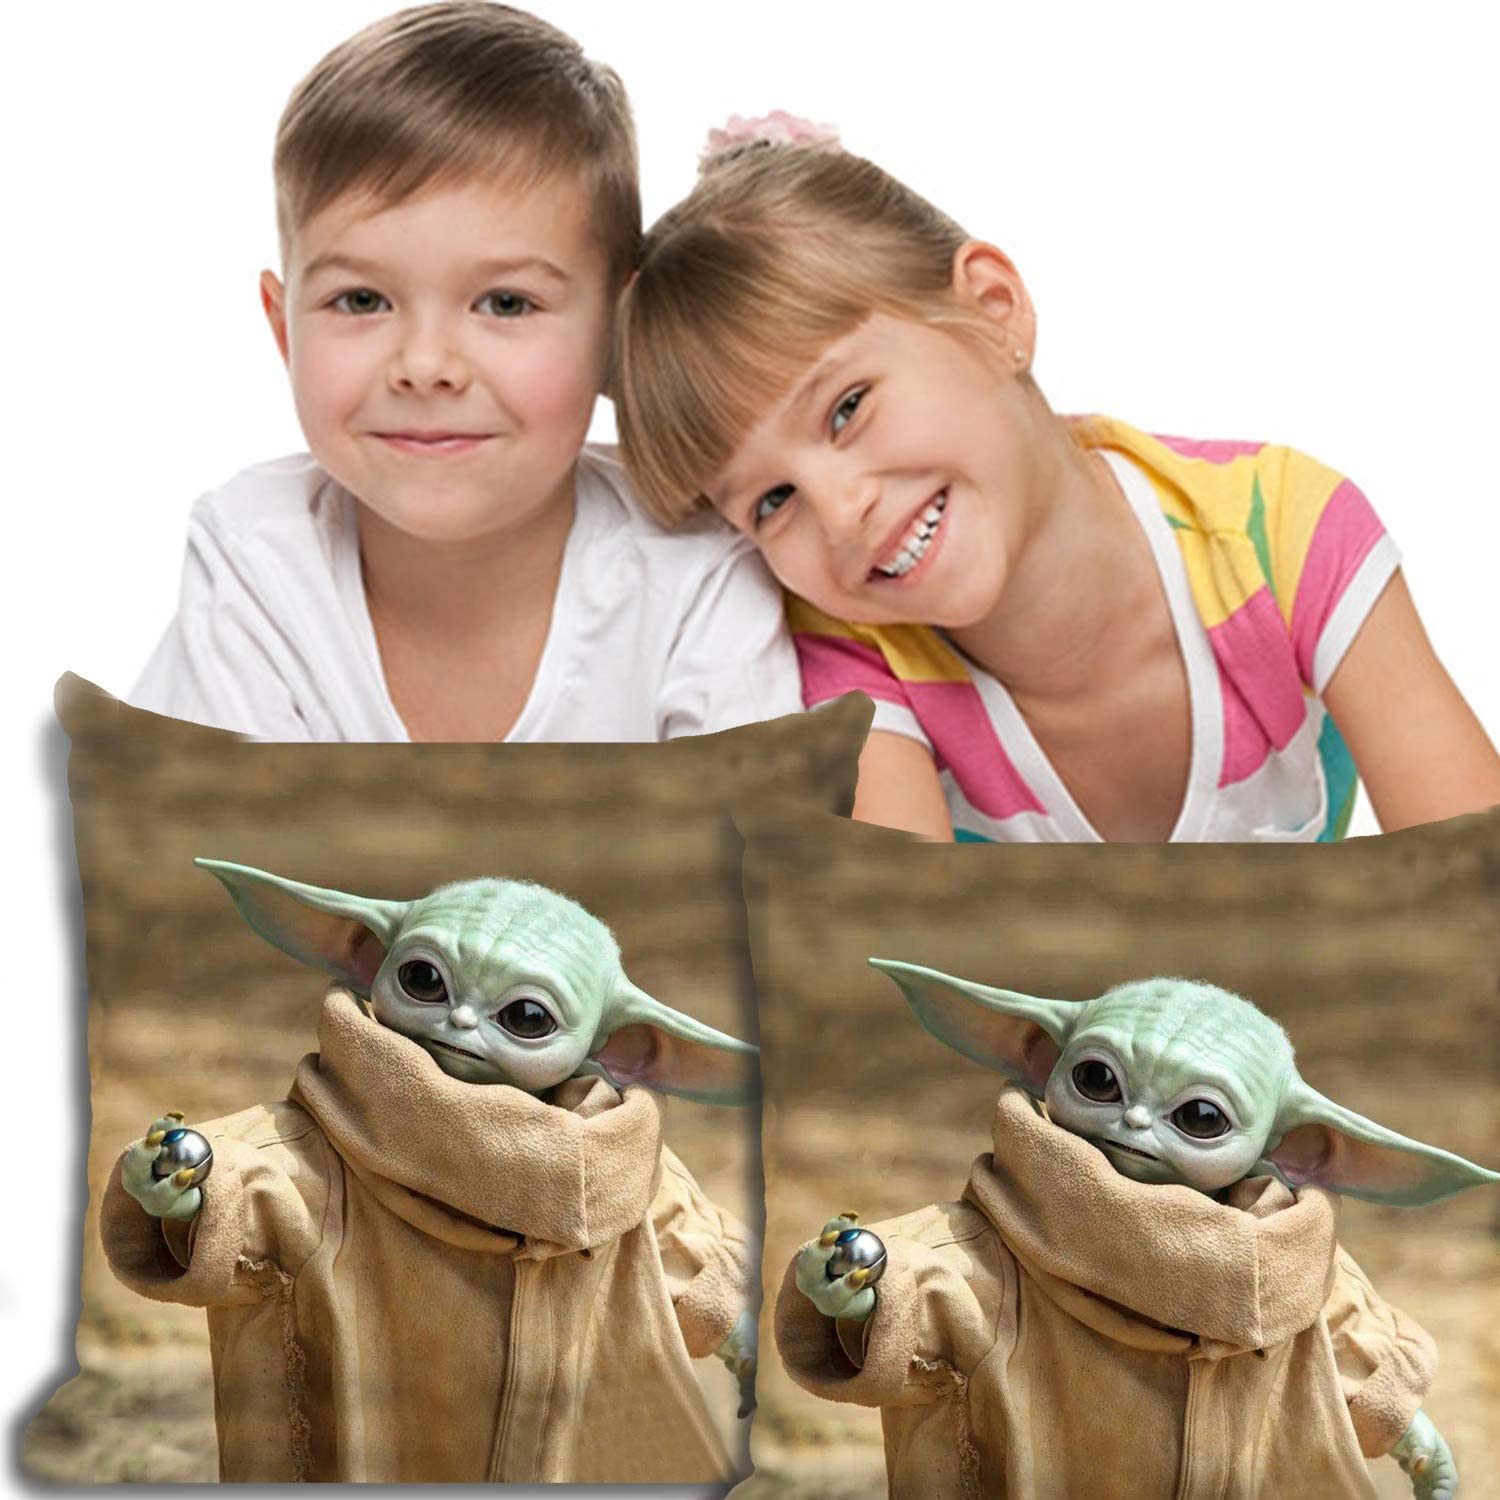 Baby Yoda The Mandalorian Bedding Pillowcase Kids Super Soft Bedding Home Decorative Pillow Covers for Children Standard Size 13x11 inches Pattern1